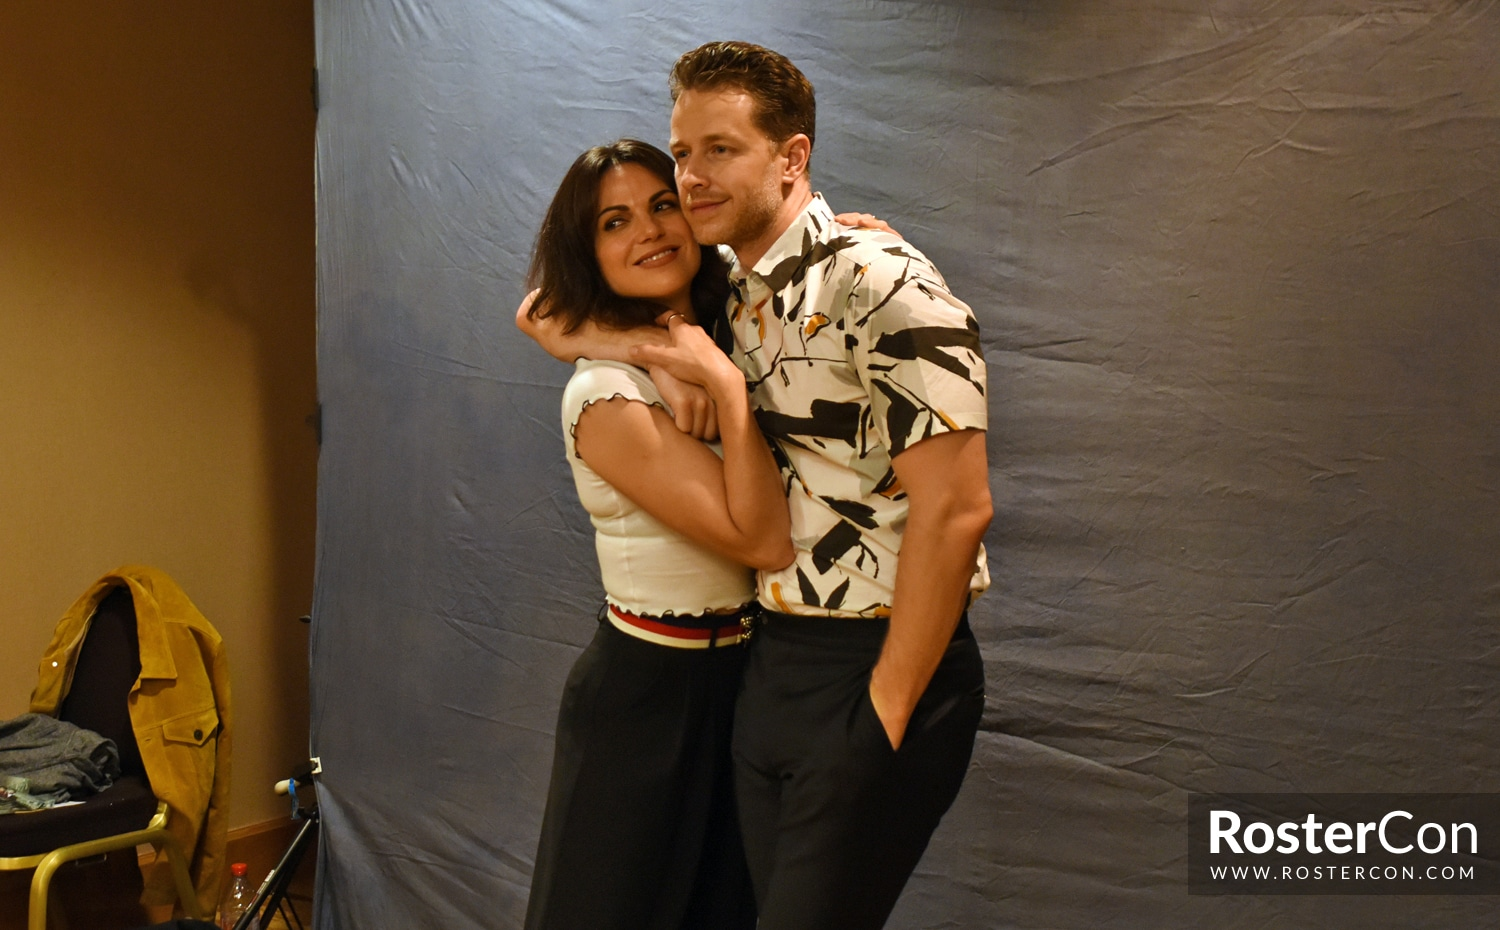 Josh Dallas & Lana Parrilla - The Happy Ending Convention 3 - Once Upon A Time